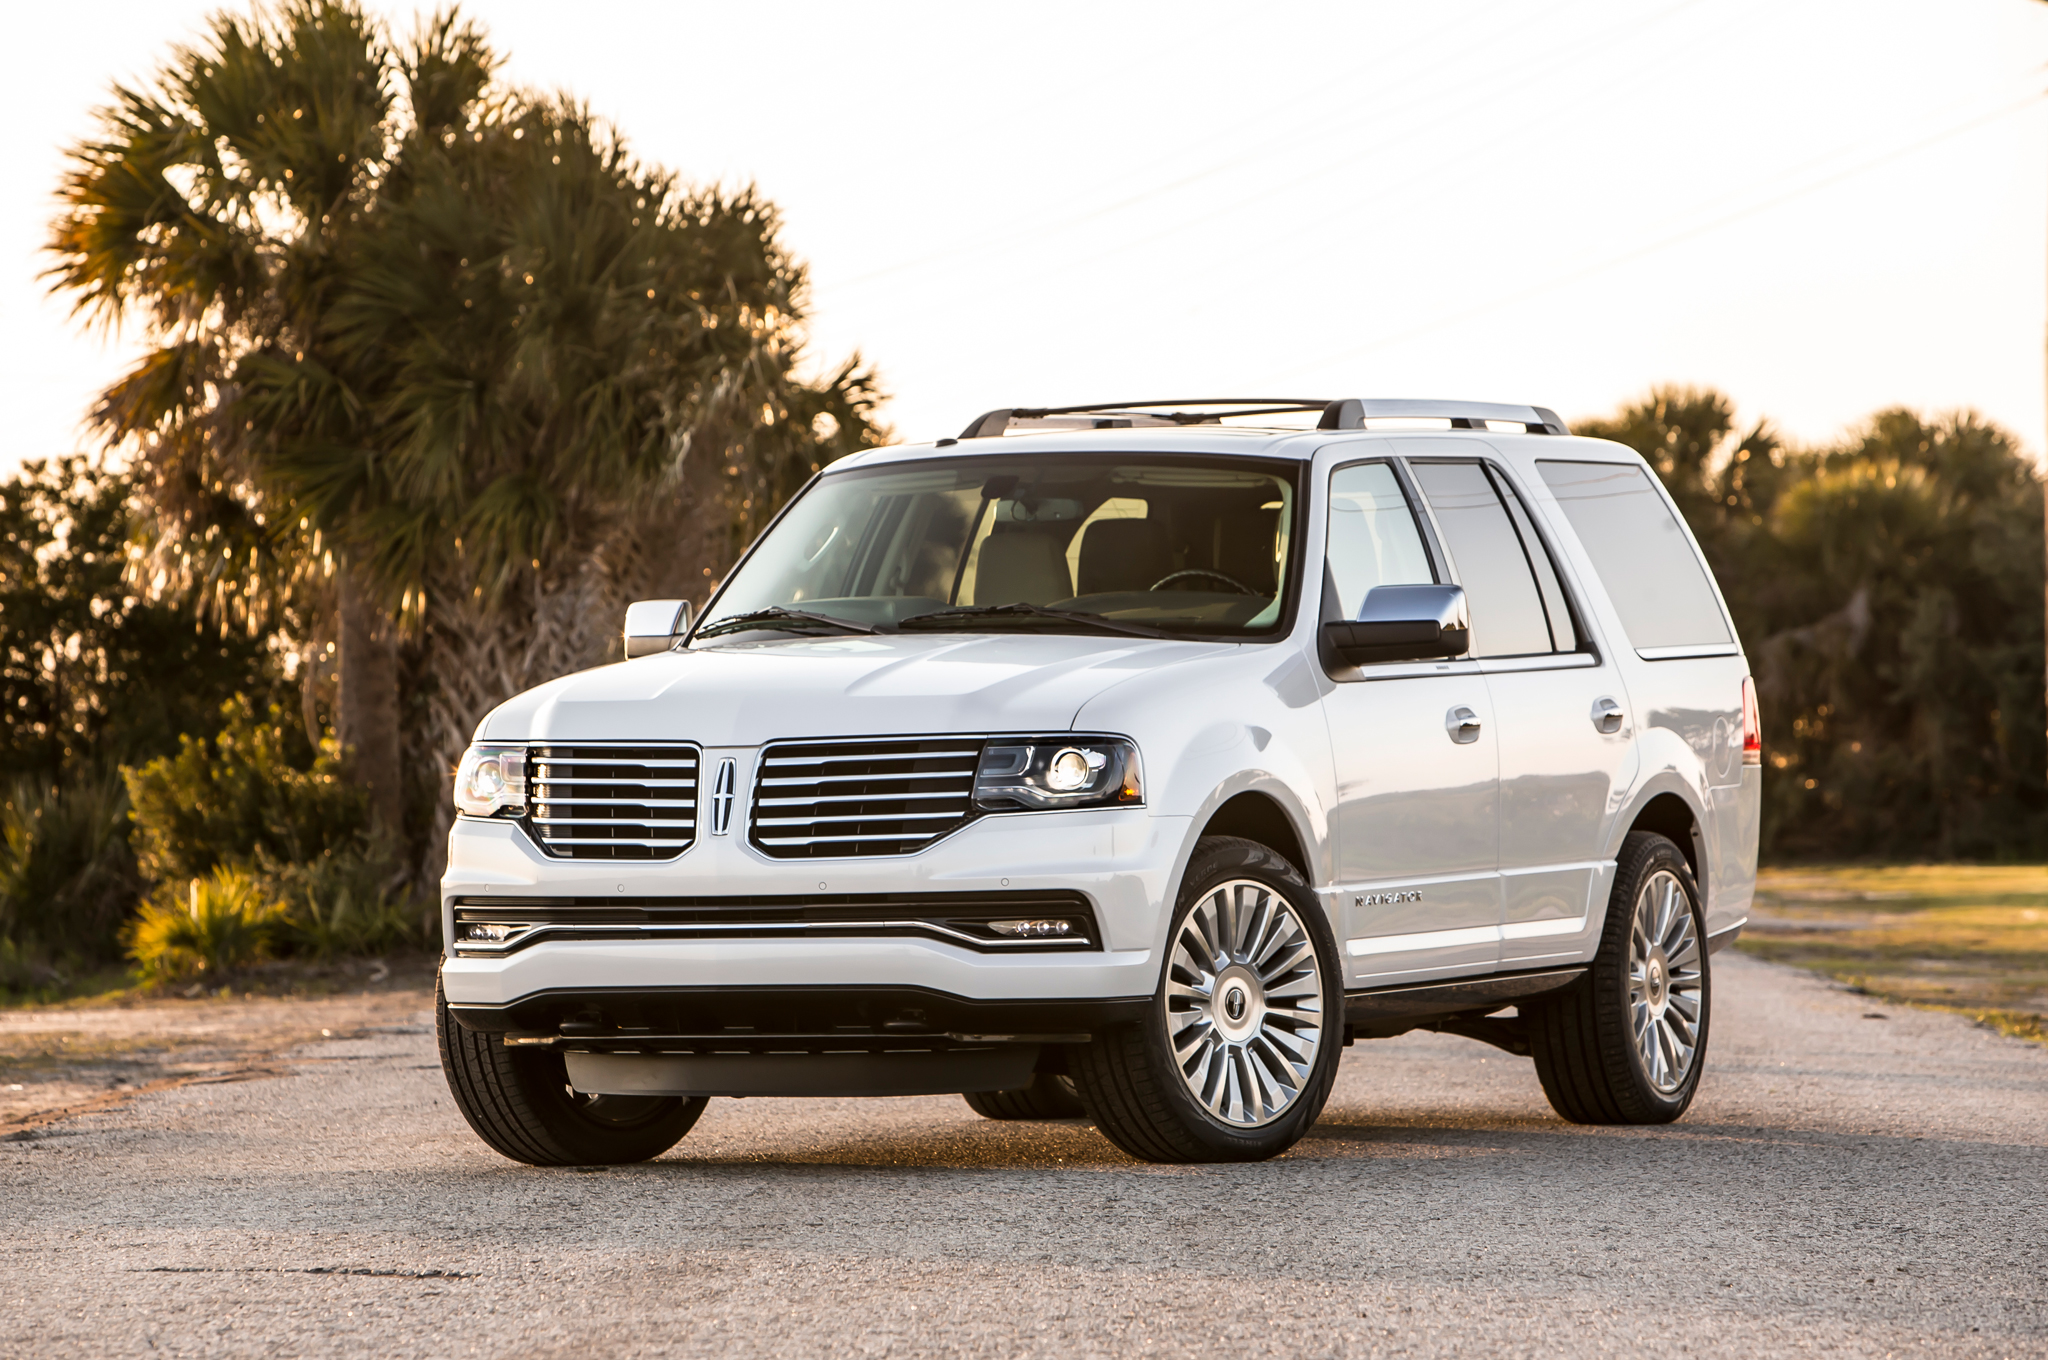 Top 10 Cool Facts About The 2015 Lincoln Navigator Motor Trend